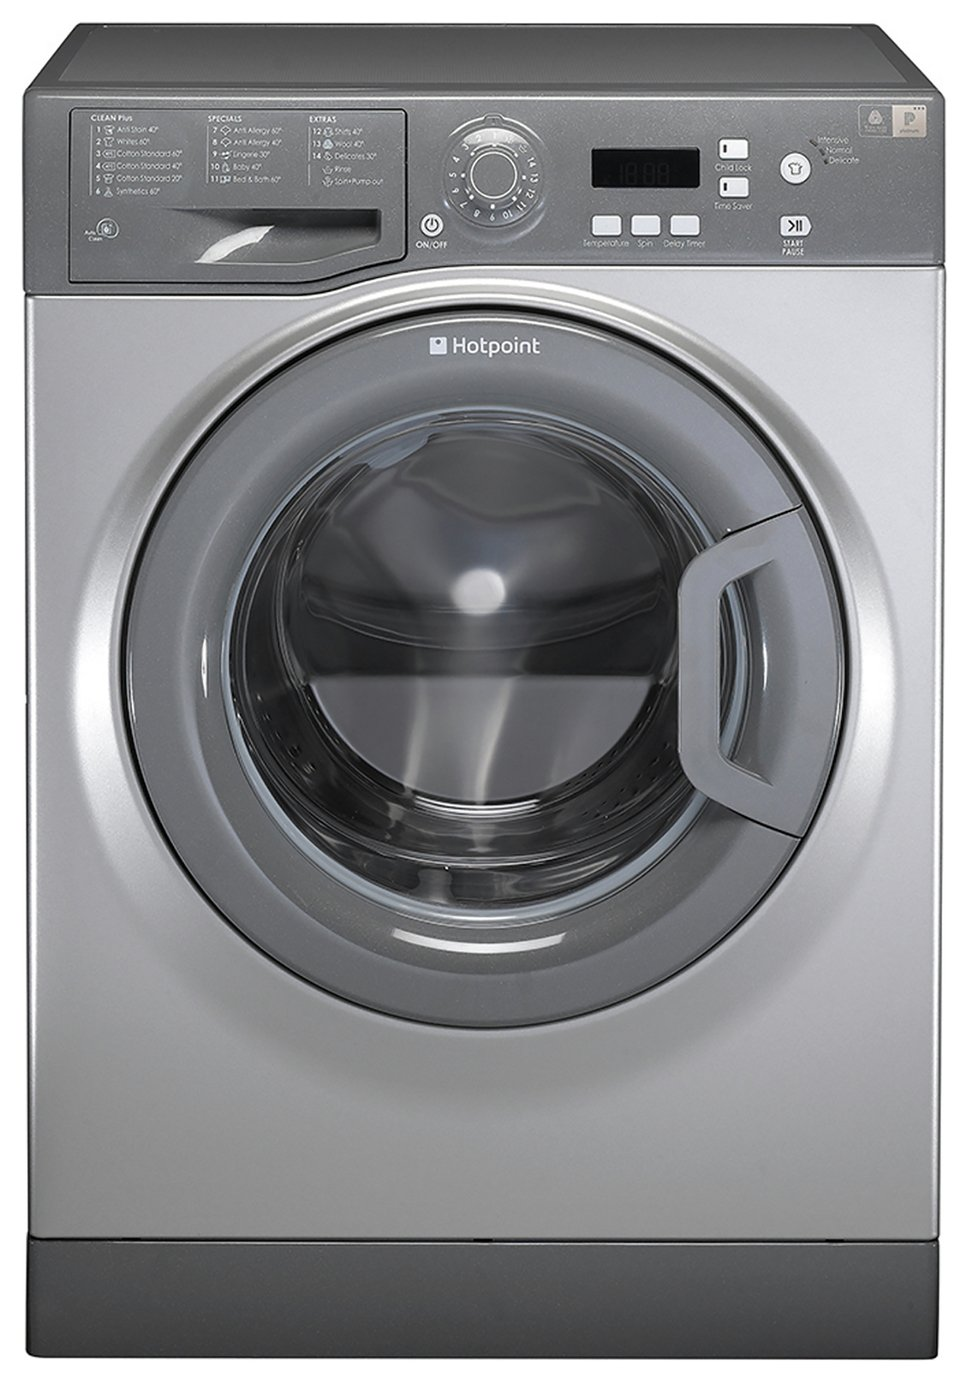 Image of Hotpoint WMAQF721G 7KG 1200 Spin Washing Machine - Graphite